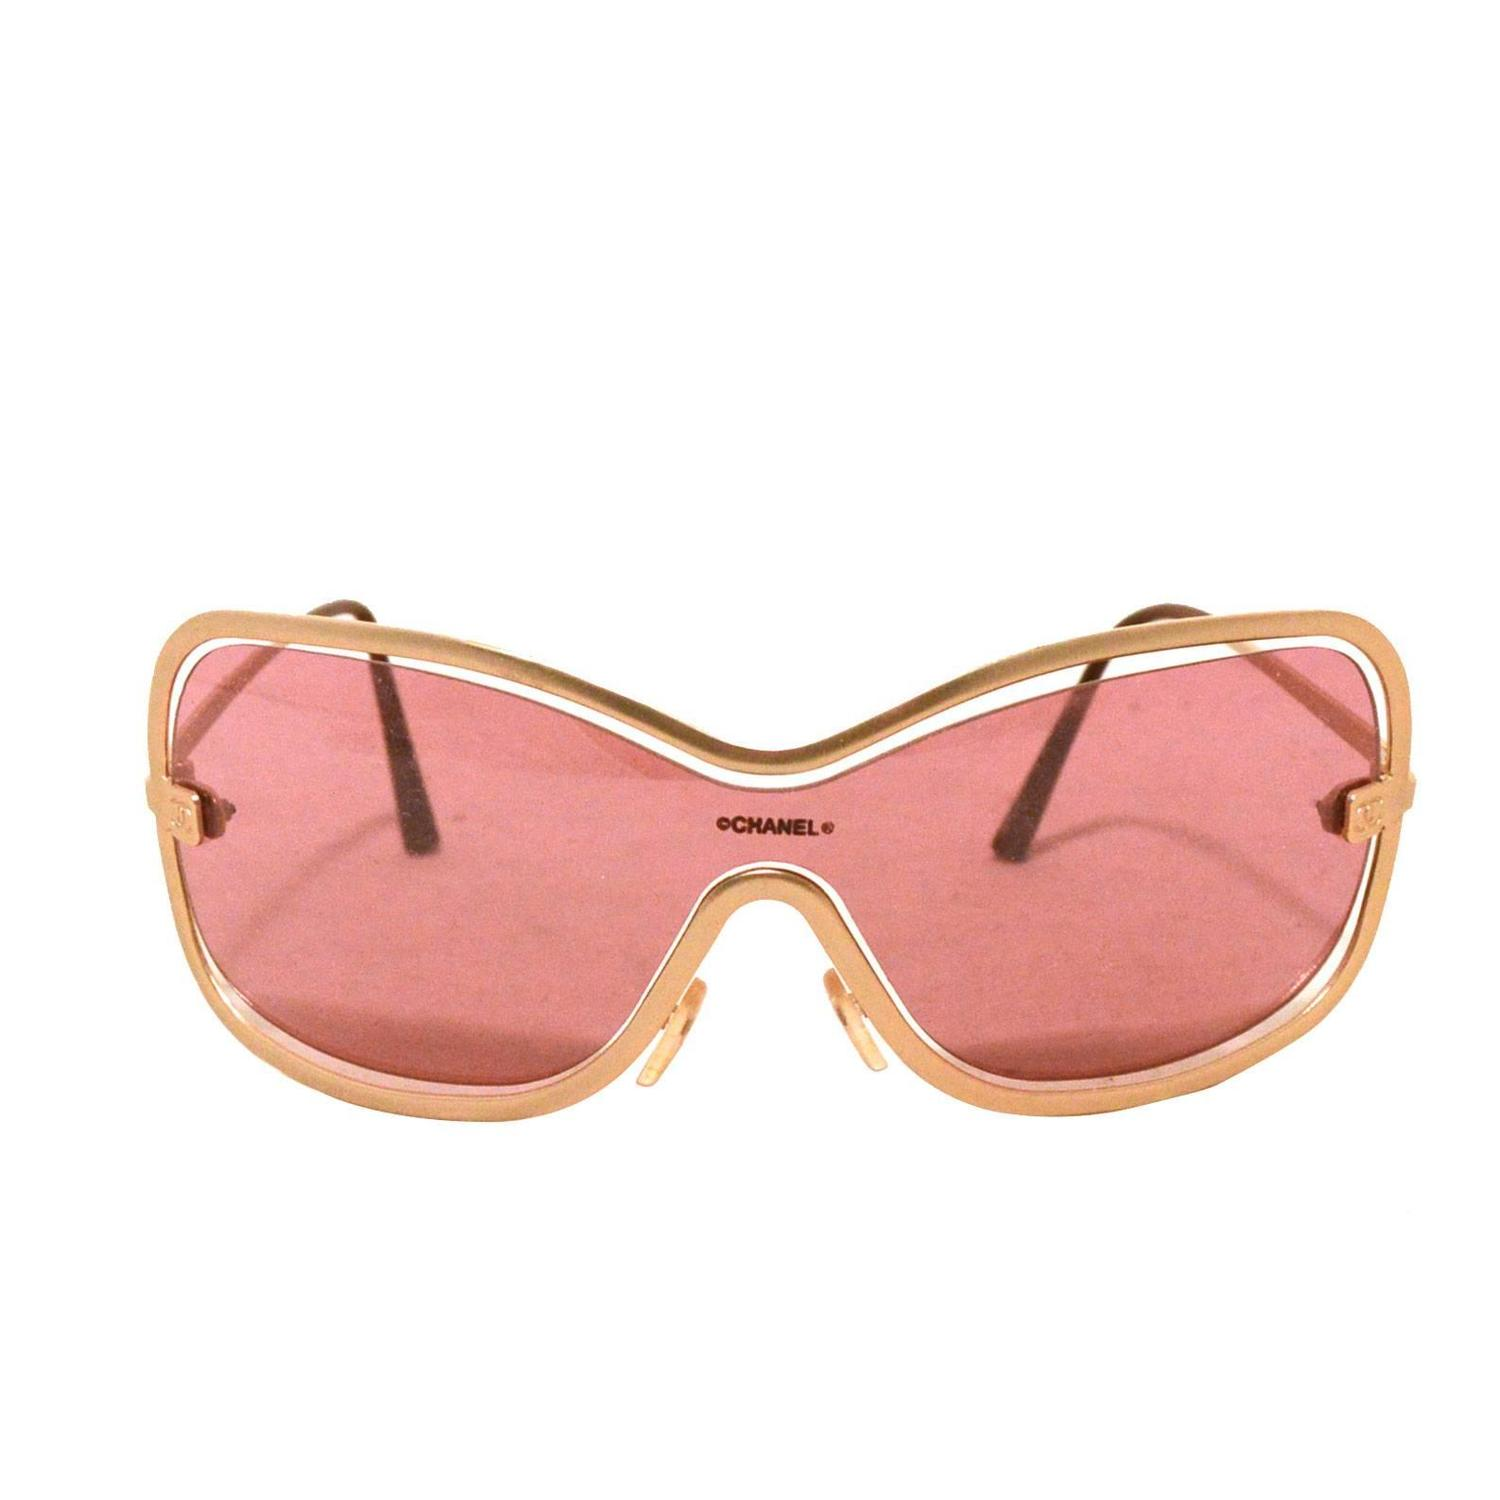 Gold Frame Chanel Sunglasses : Chanel Rare Gold Floating Frame Sunglasses at 1stdibs